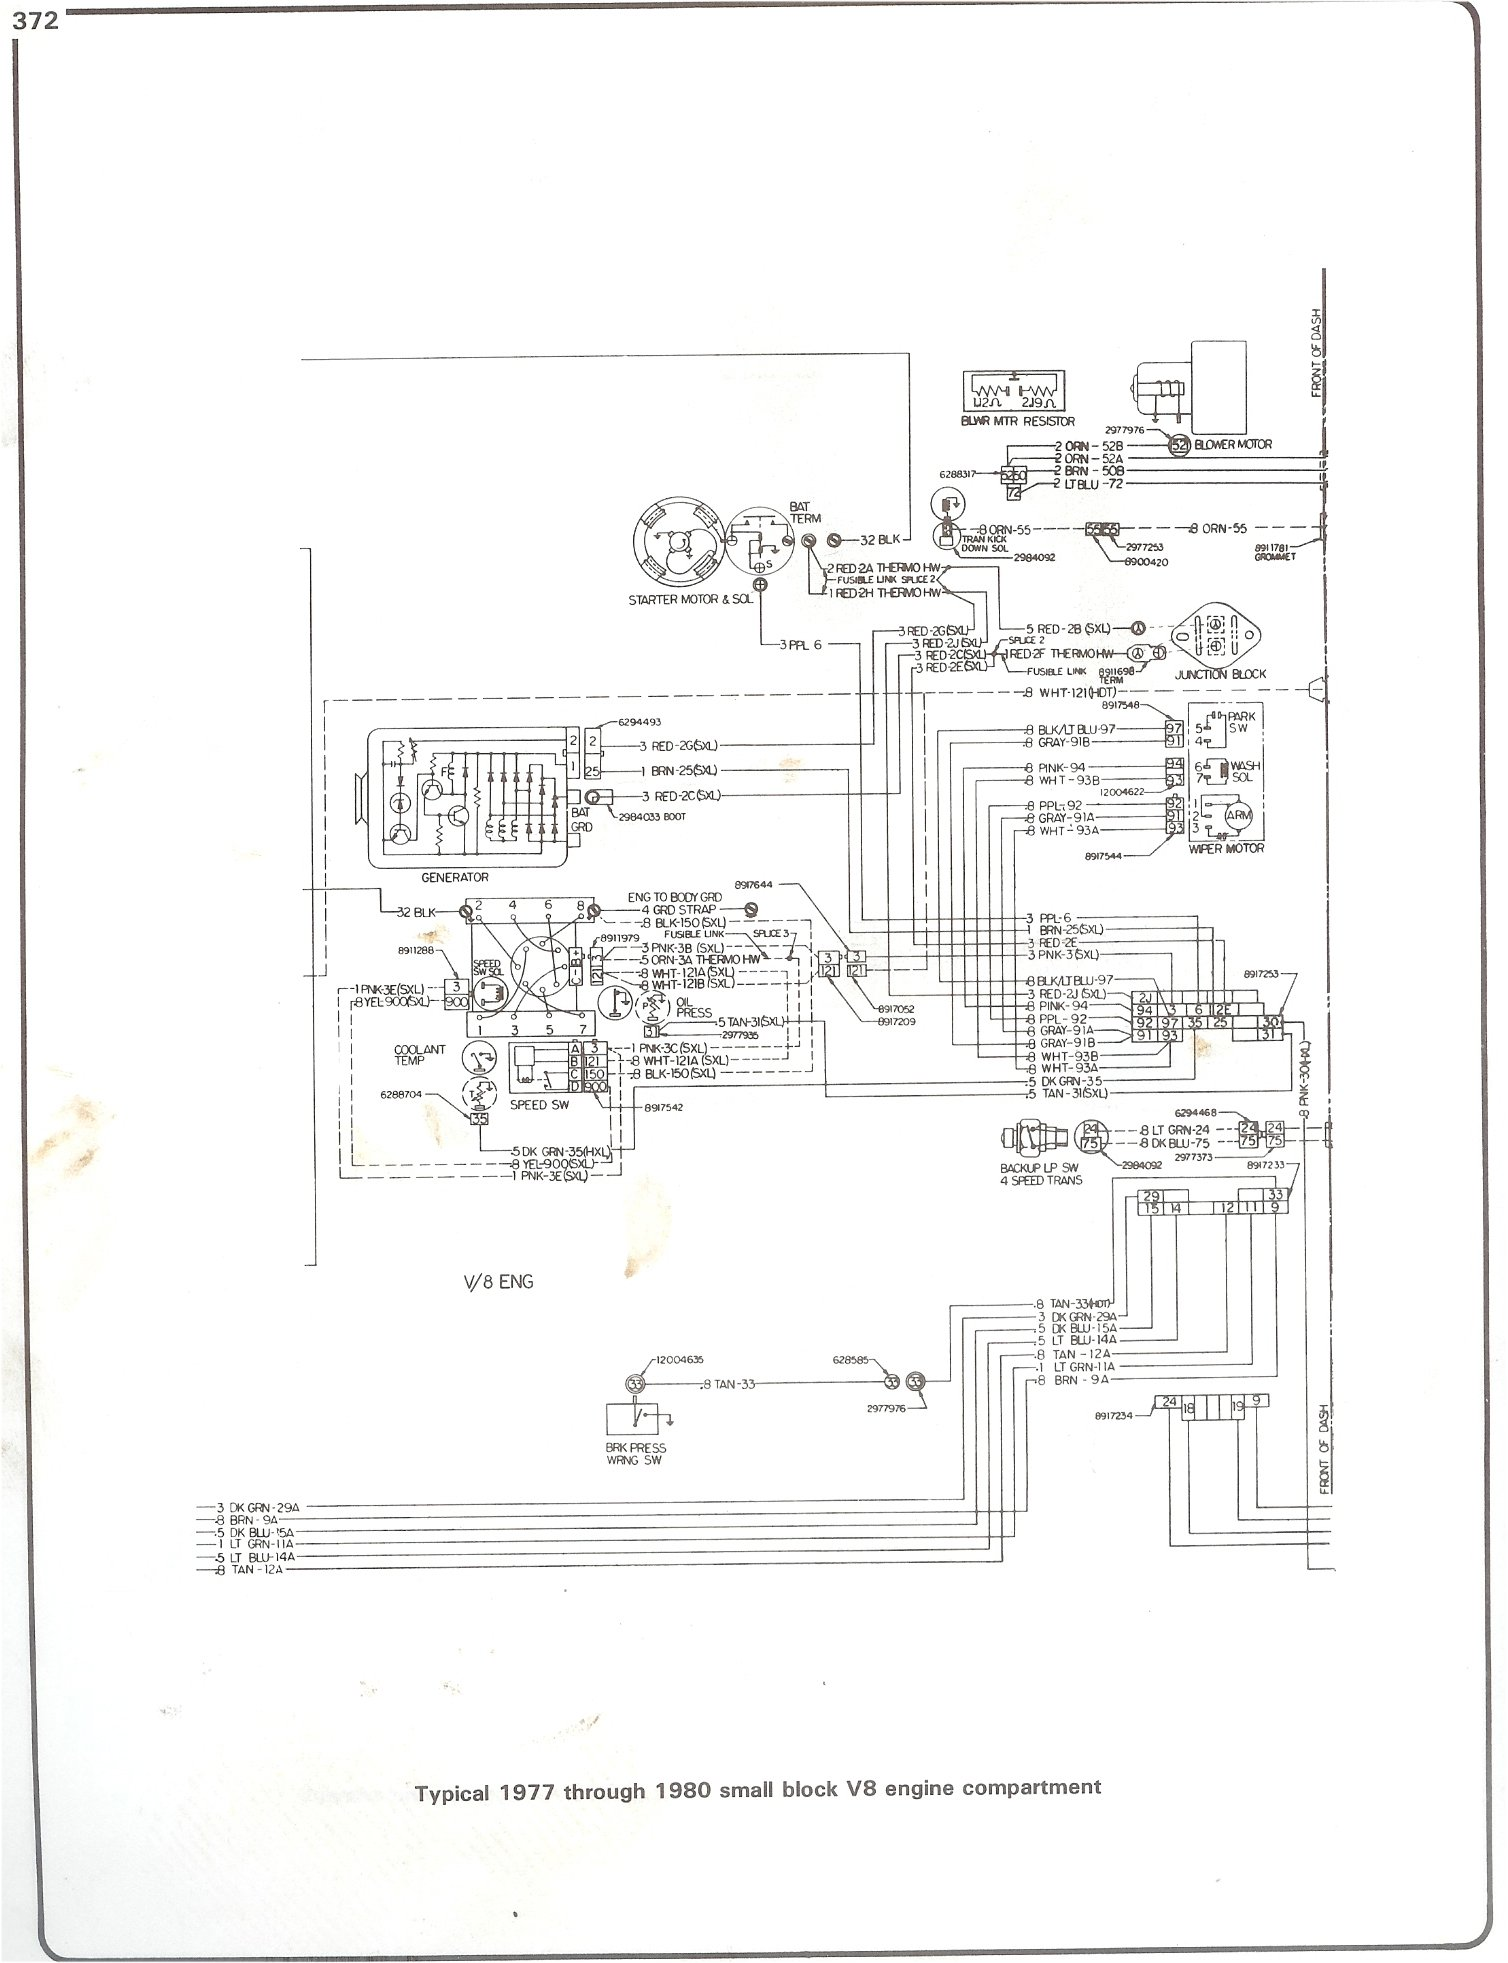 Complete 73 87 Wiring Diagrams 93 Chevy S10 Pick Up Diagram 77 80 Sbc Engine